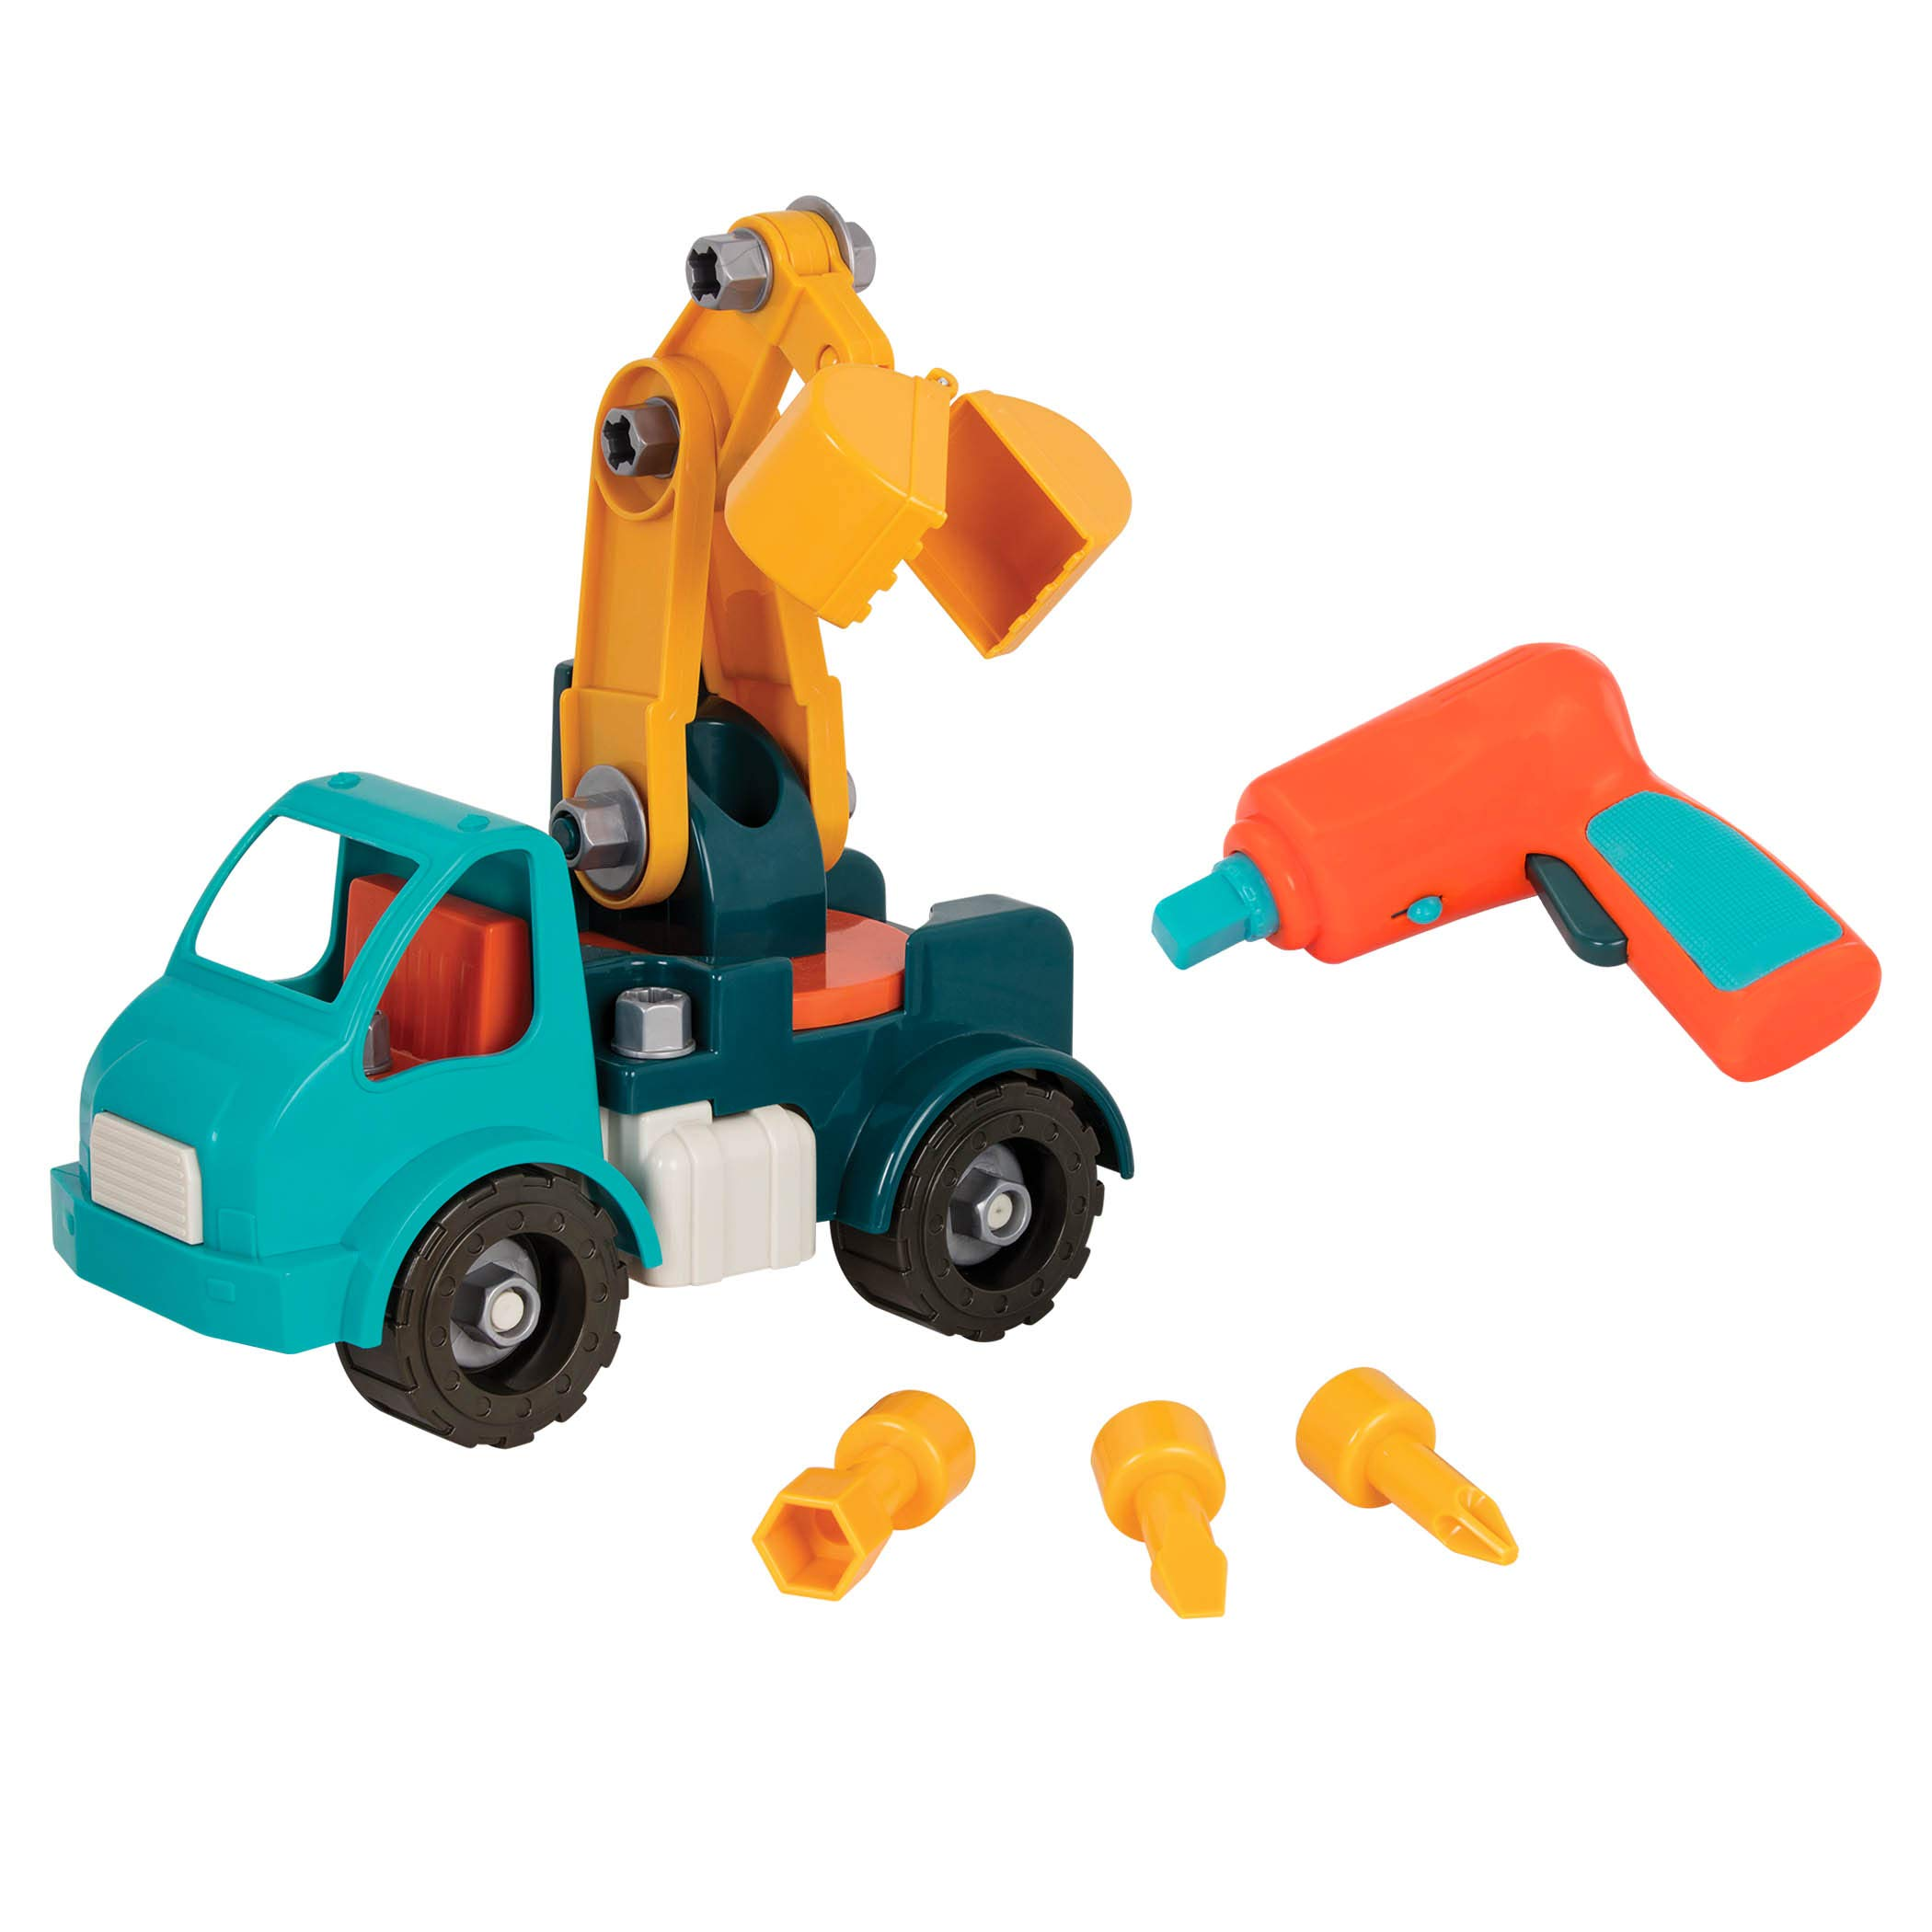 Battat - Take-Apart Crane - Take-Apart Toy Crane Truck with Toy Drill  Building Toys for Kids 3 years + (34-Pcs) by Battat